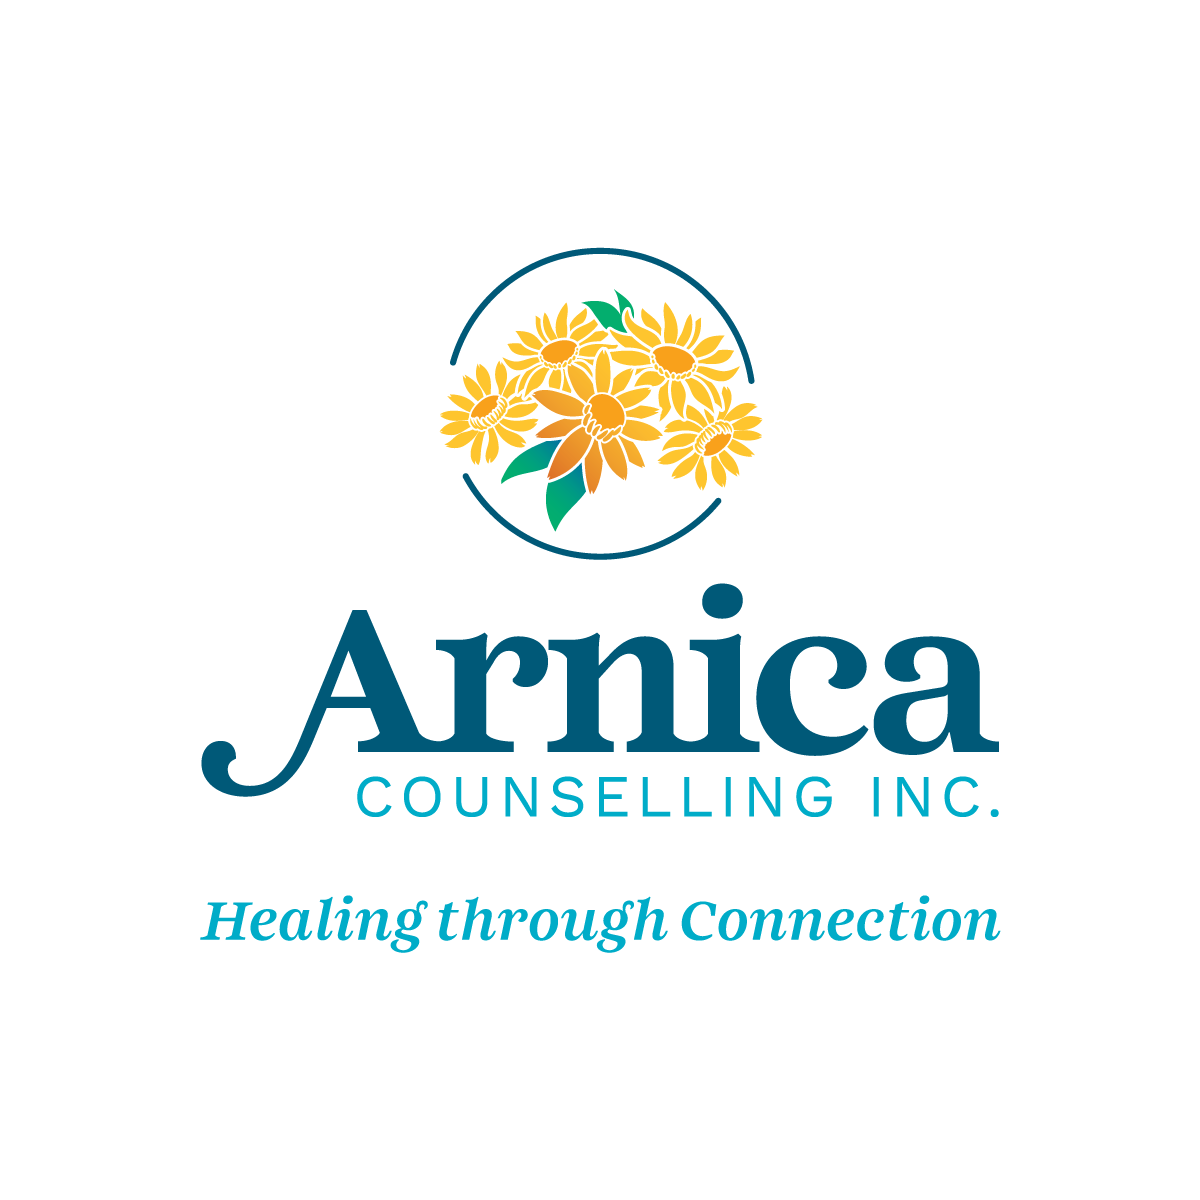 ARNICA COUNSELLING INC. logo